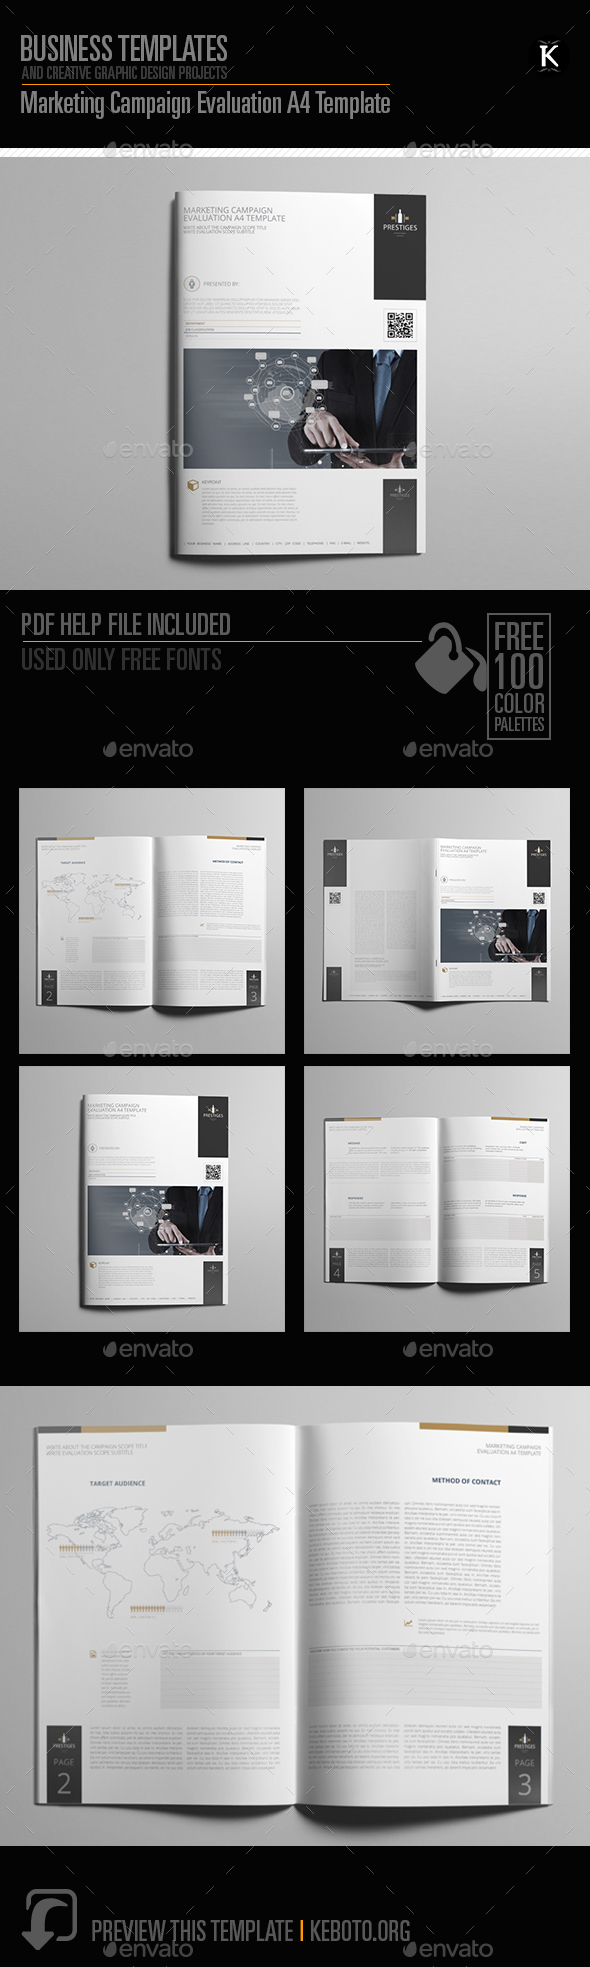 Marketing Campaign Evaluation A Template By Keboto GraphicRiver - Marketing campaign template